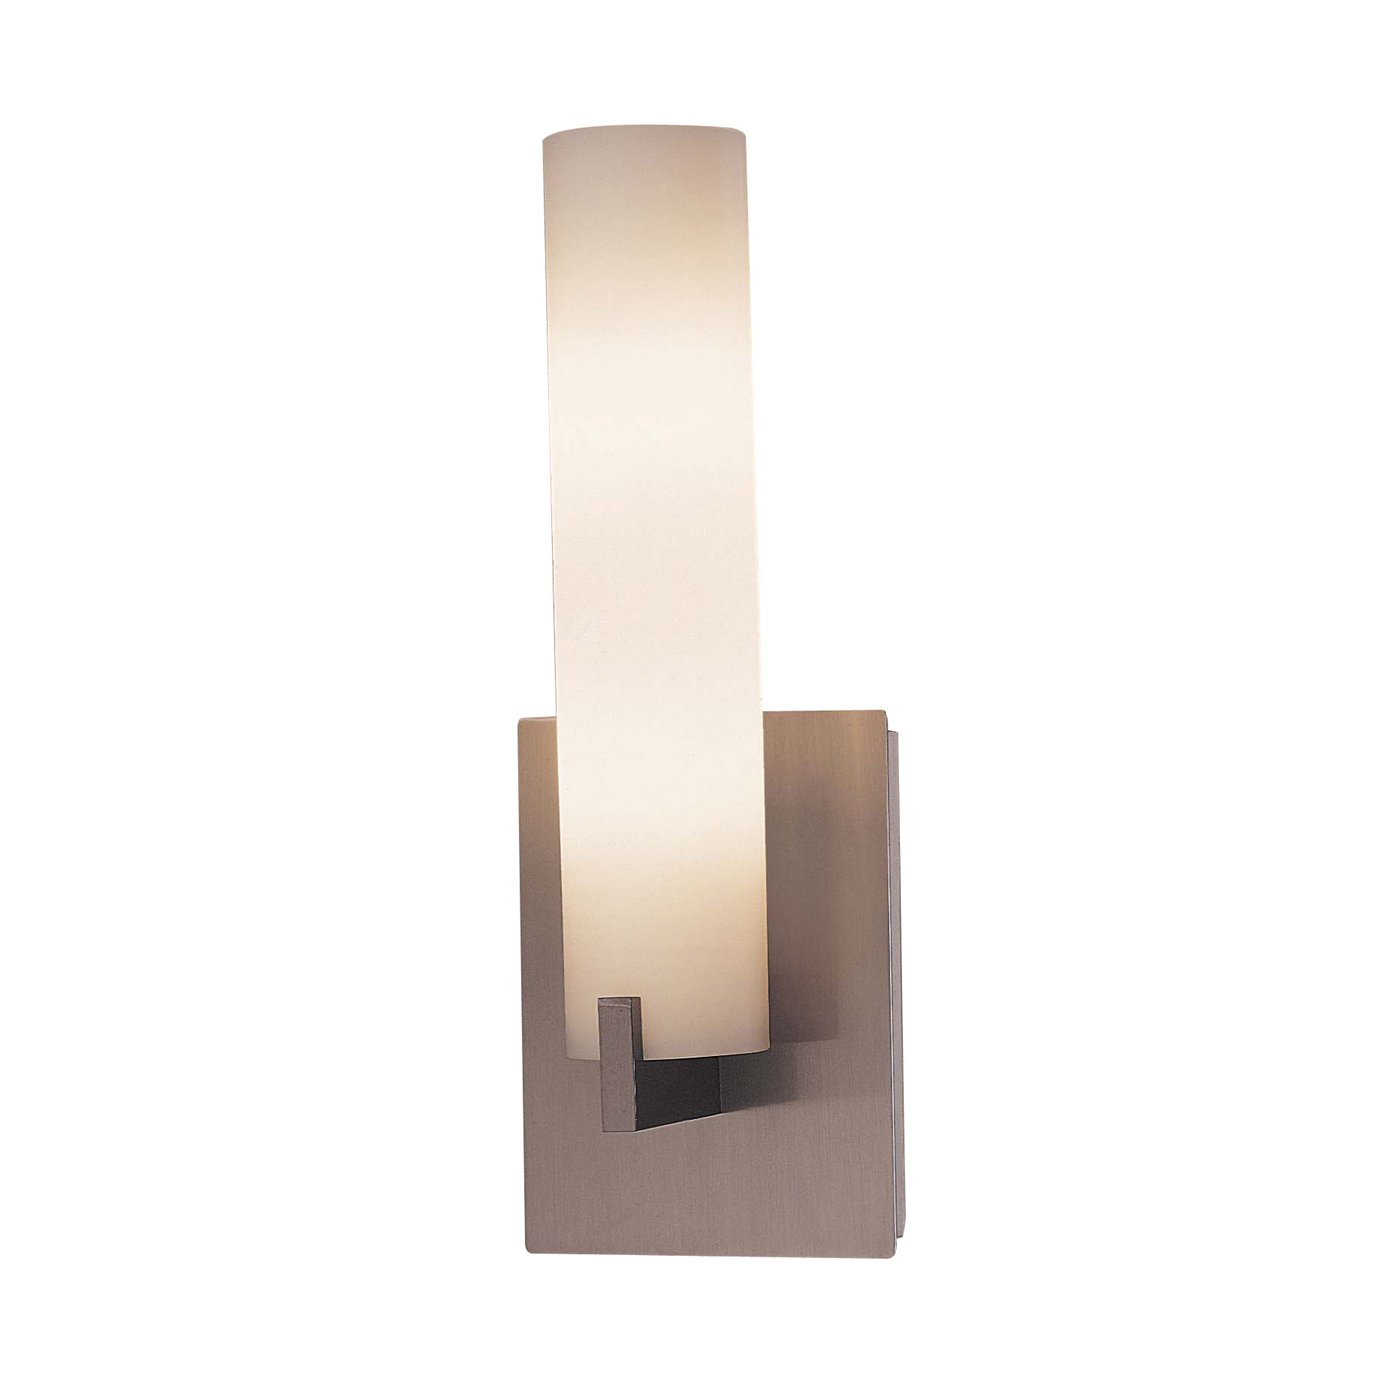 Battery Operated Sconce - HomesFeed on Battery Powered Wall Sconces id=63109